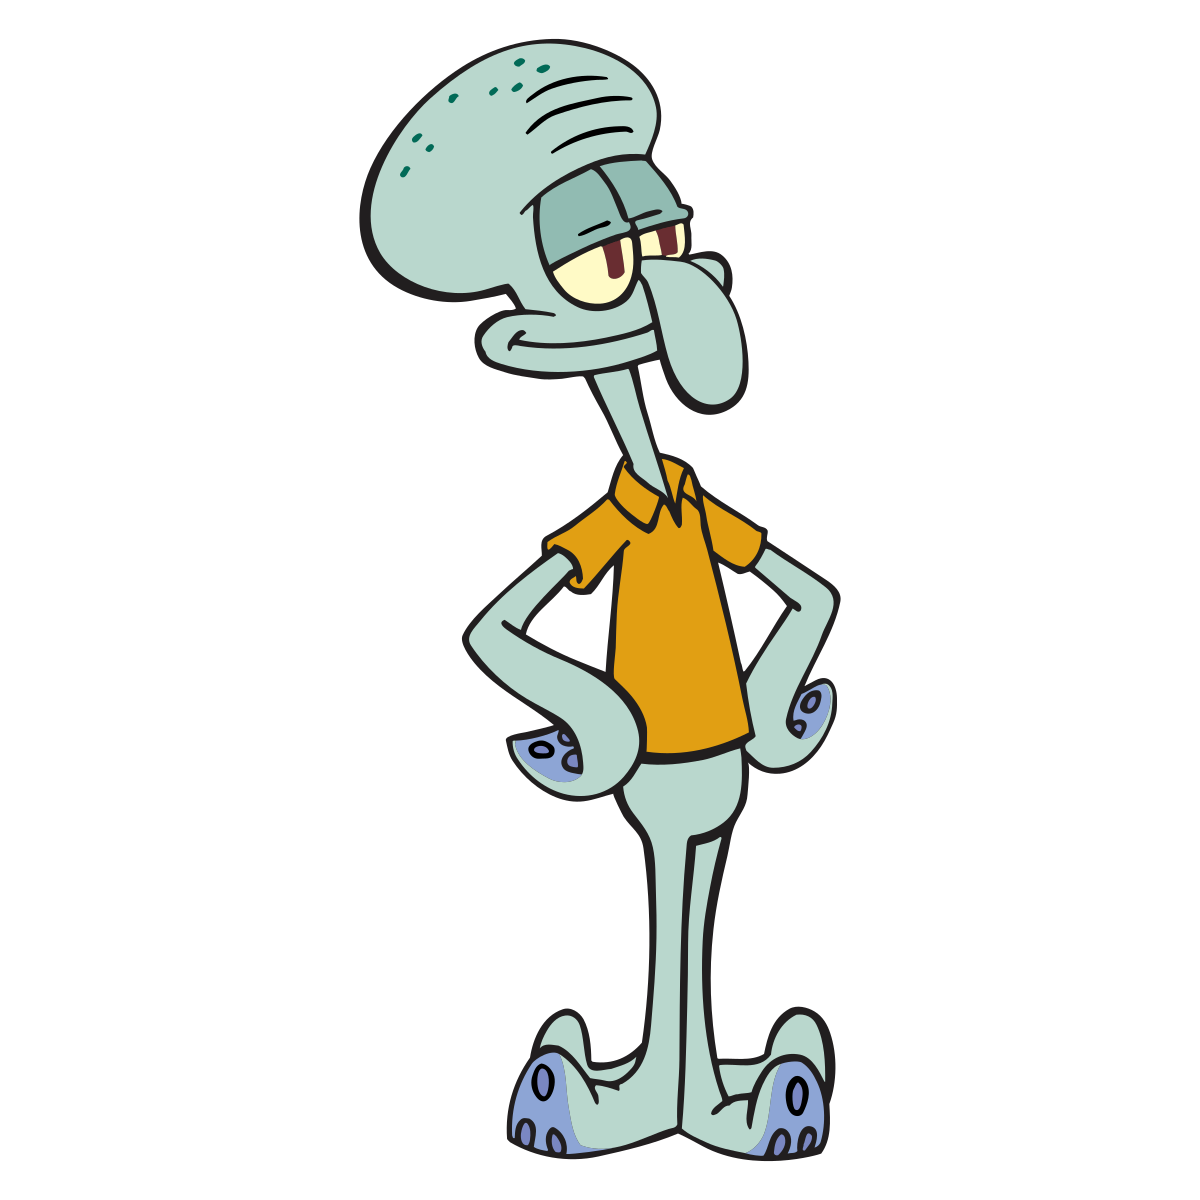 Tentacles holding png. Squidward wikipedia